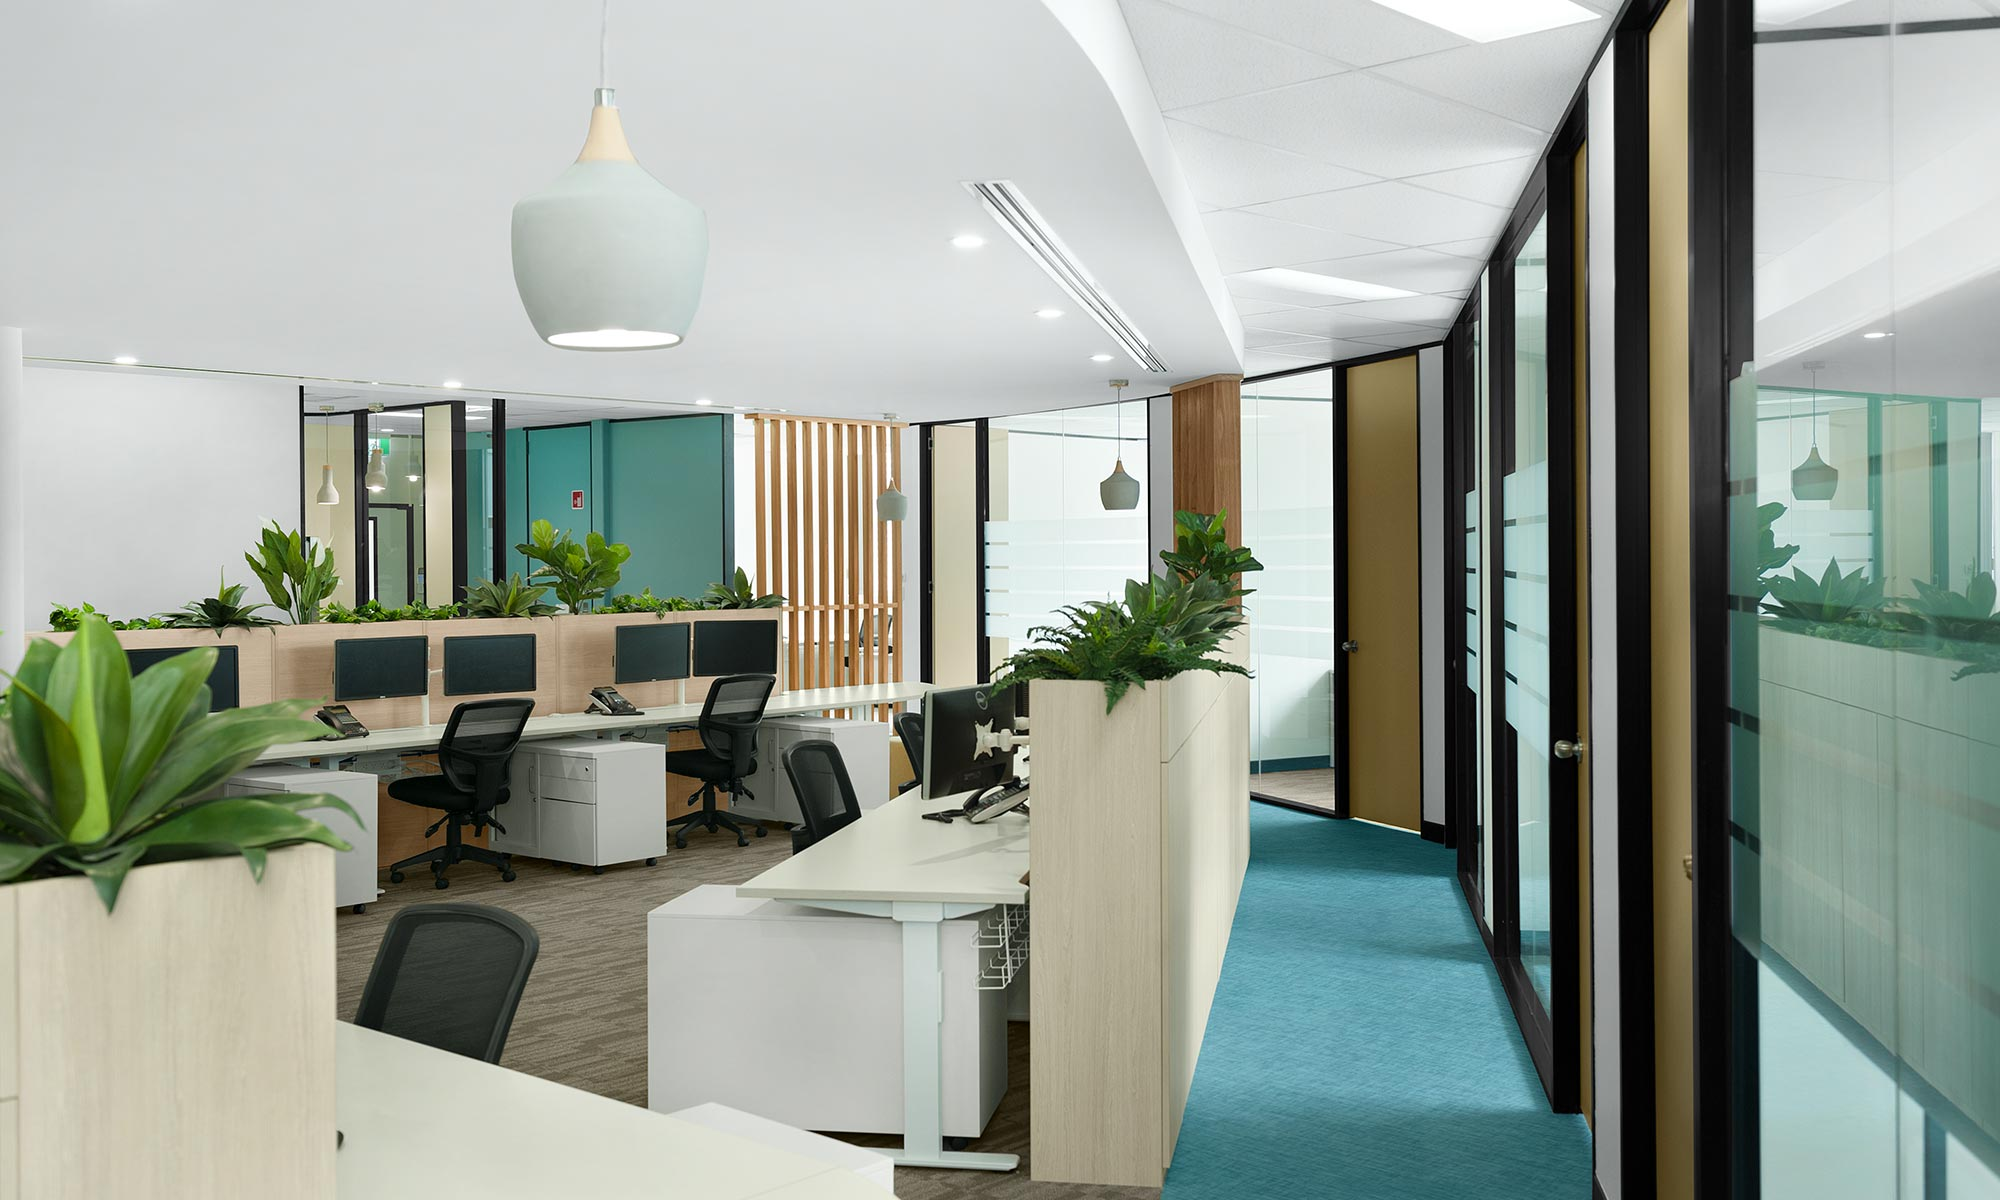 klm accountants office design fitout newcastle 08